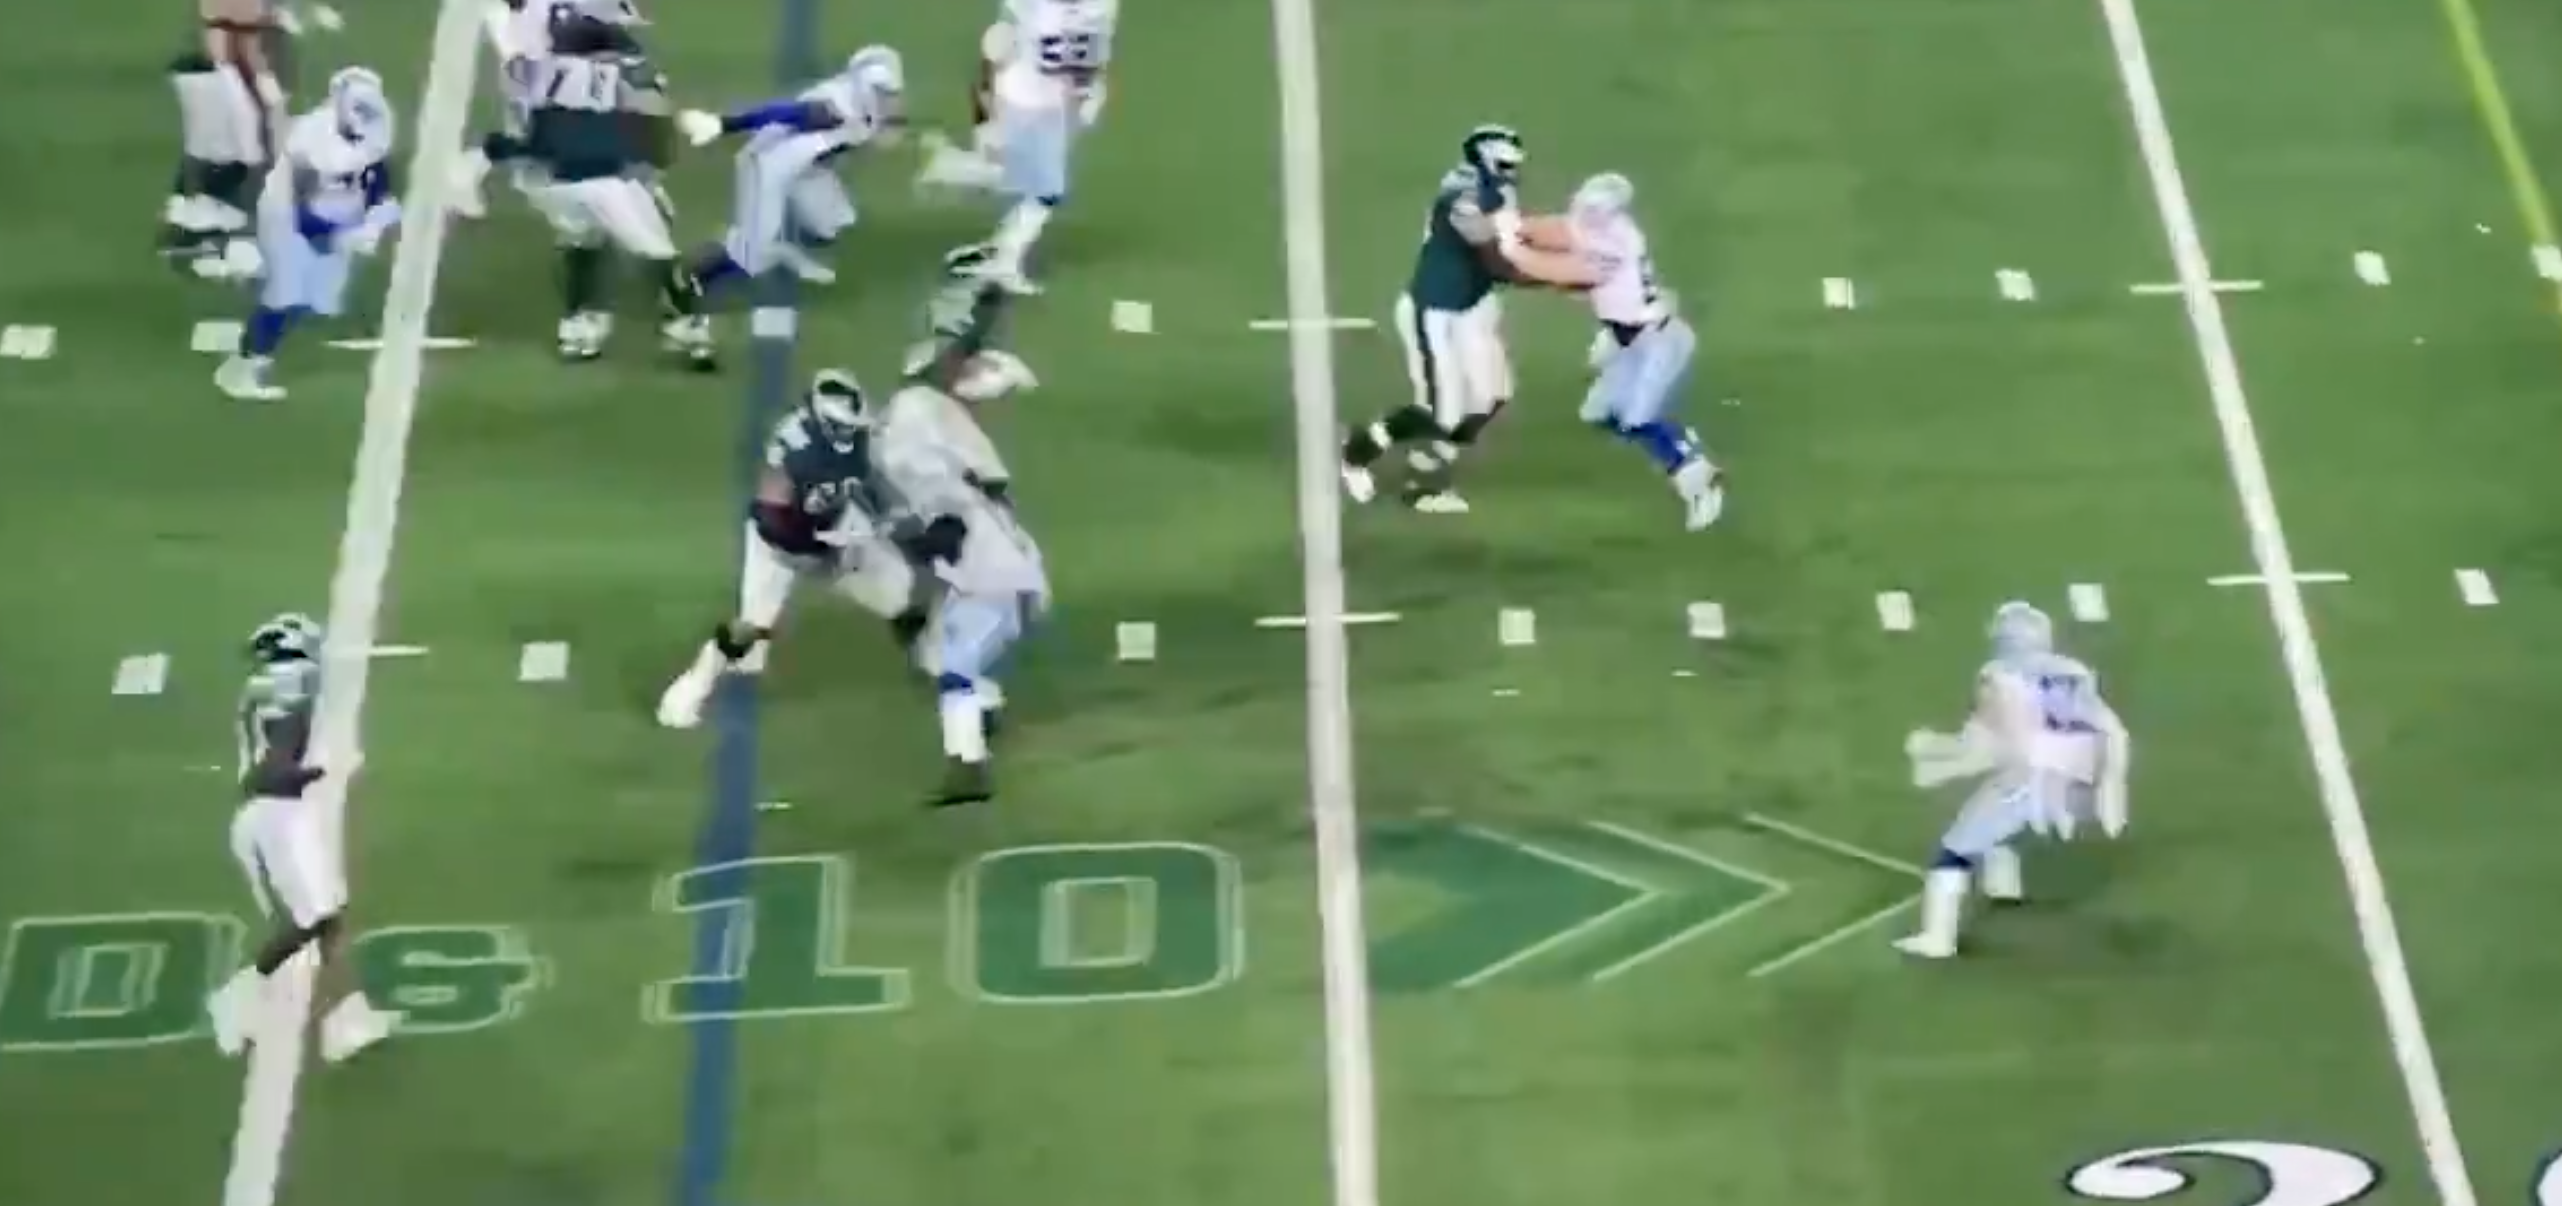 Hey NFL, You're Going To Fine Jaylon Smith For This Right?